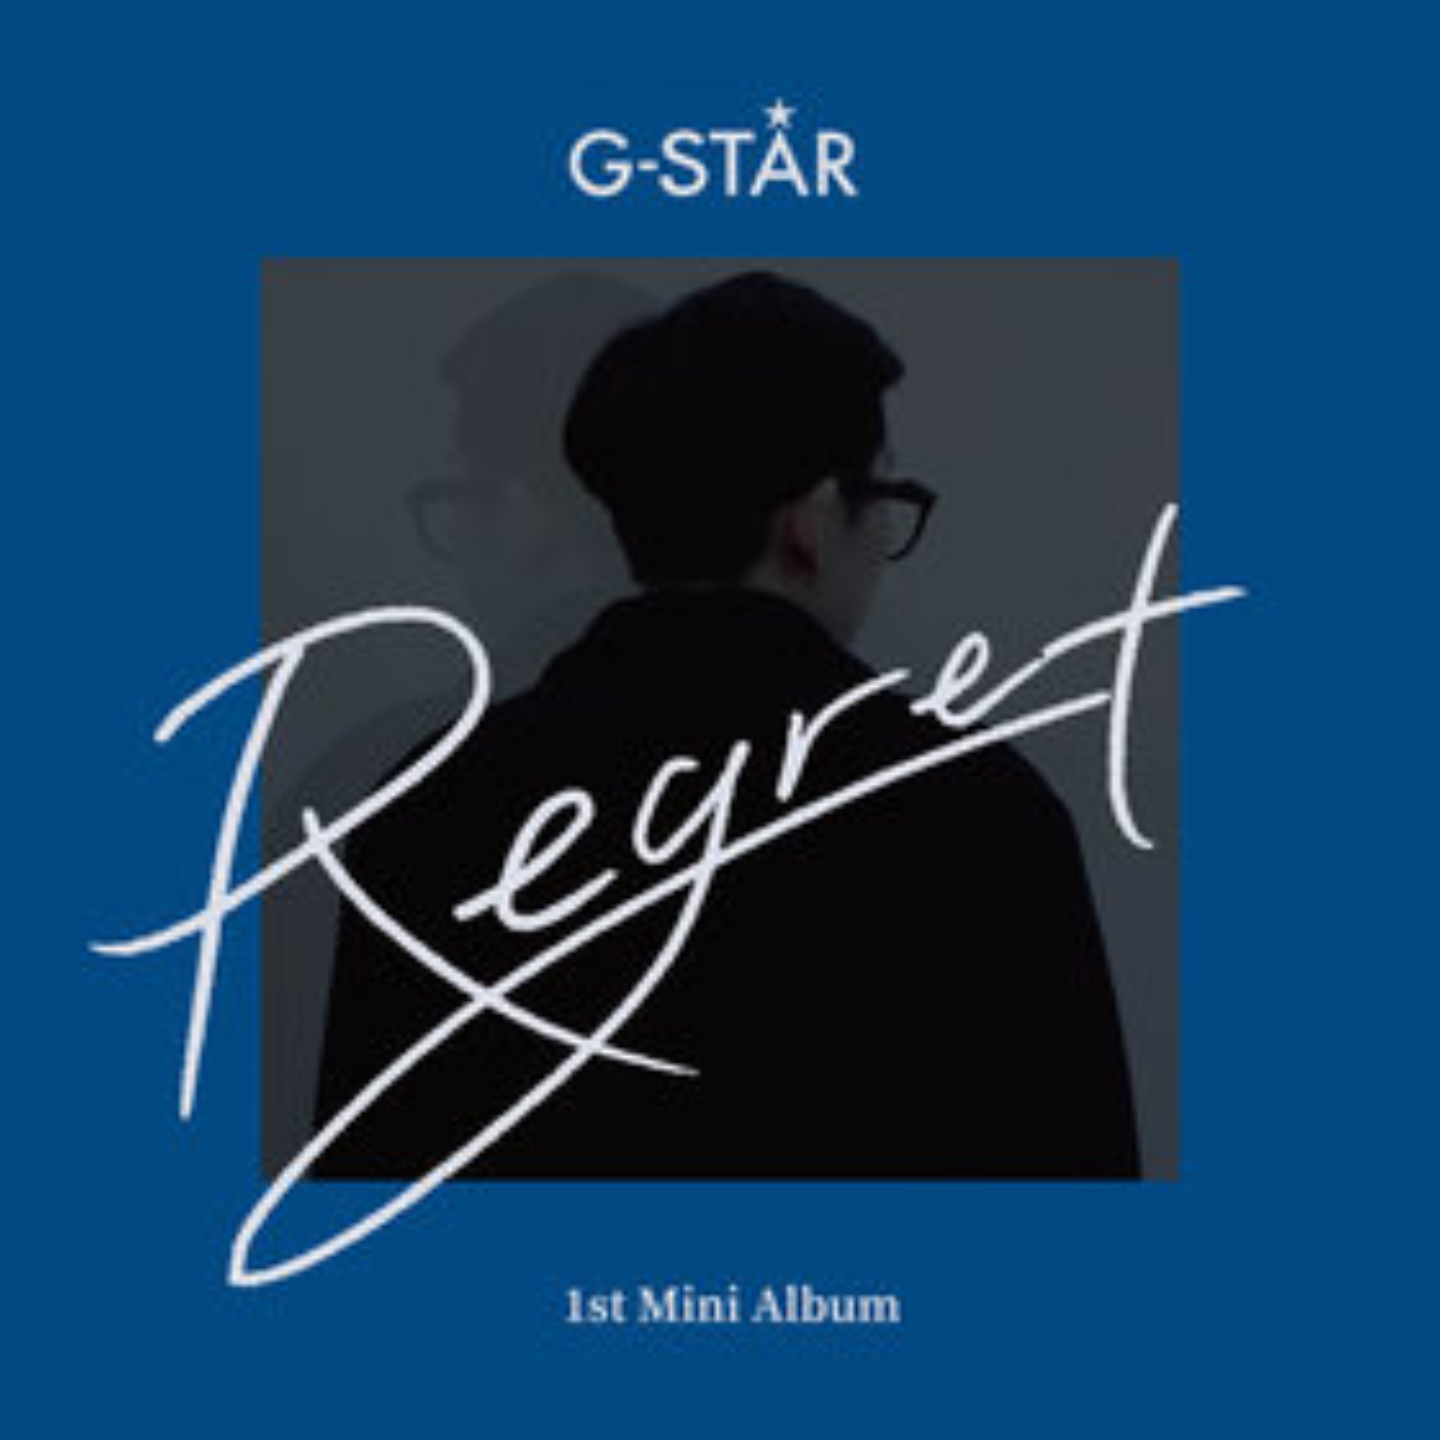 G-star - Regret